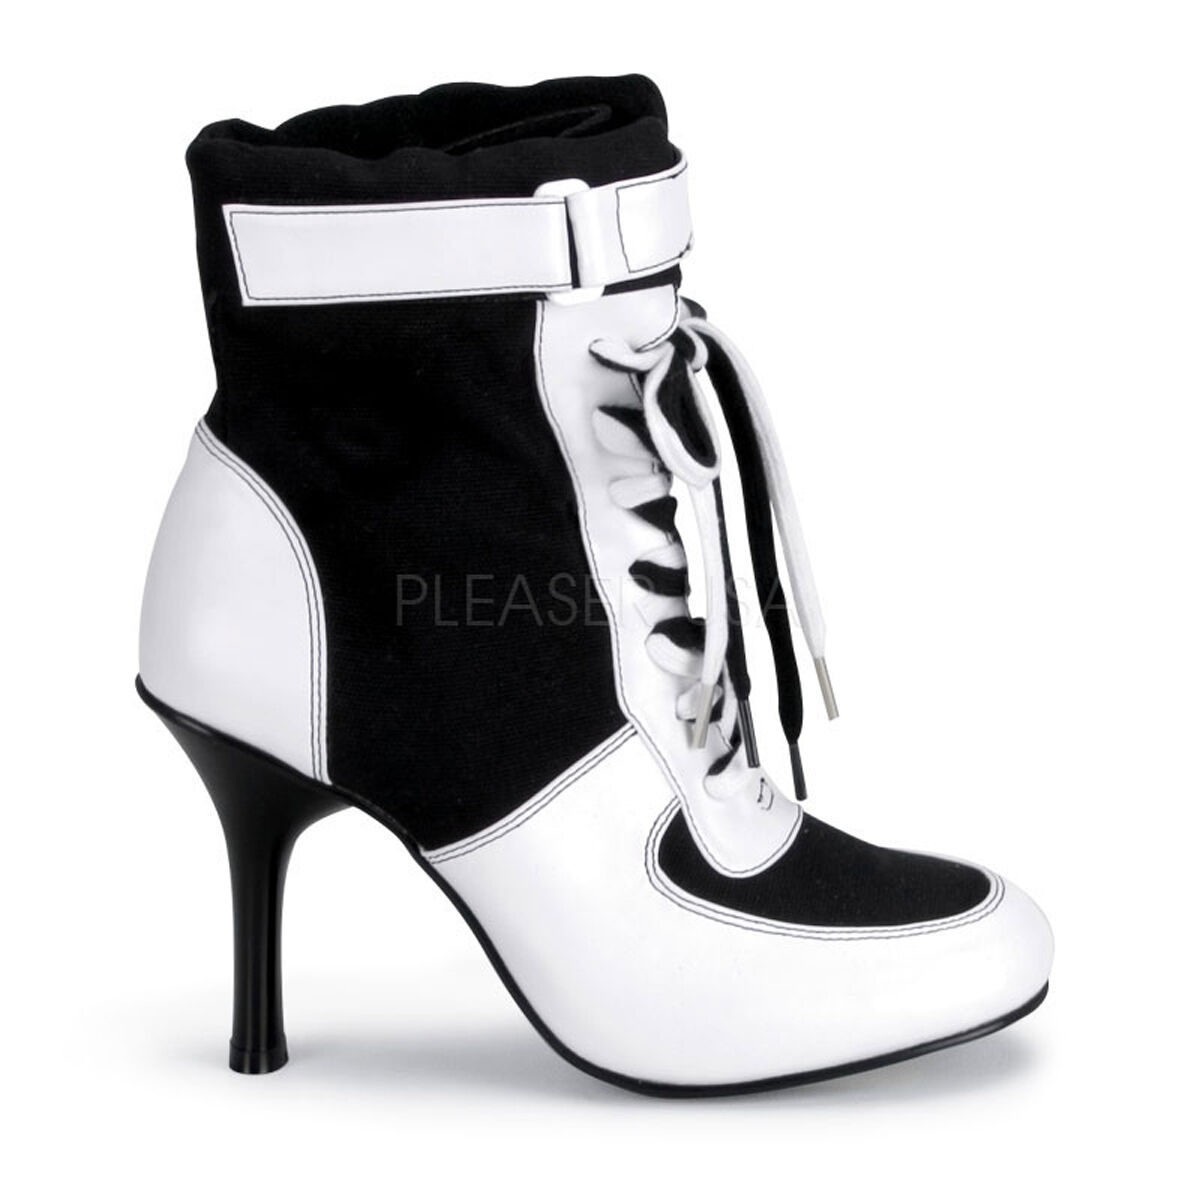 Black White Referee Soccer Player Sneaker Boots Halloween Costume Shoes 7 8 9 10